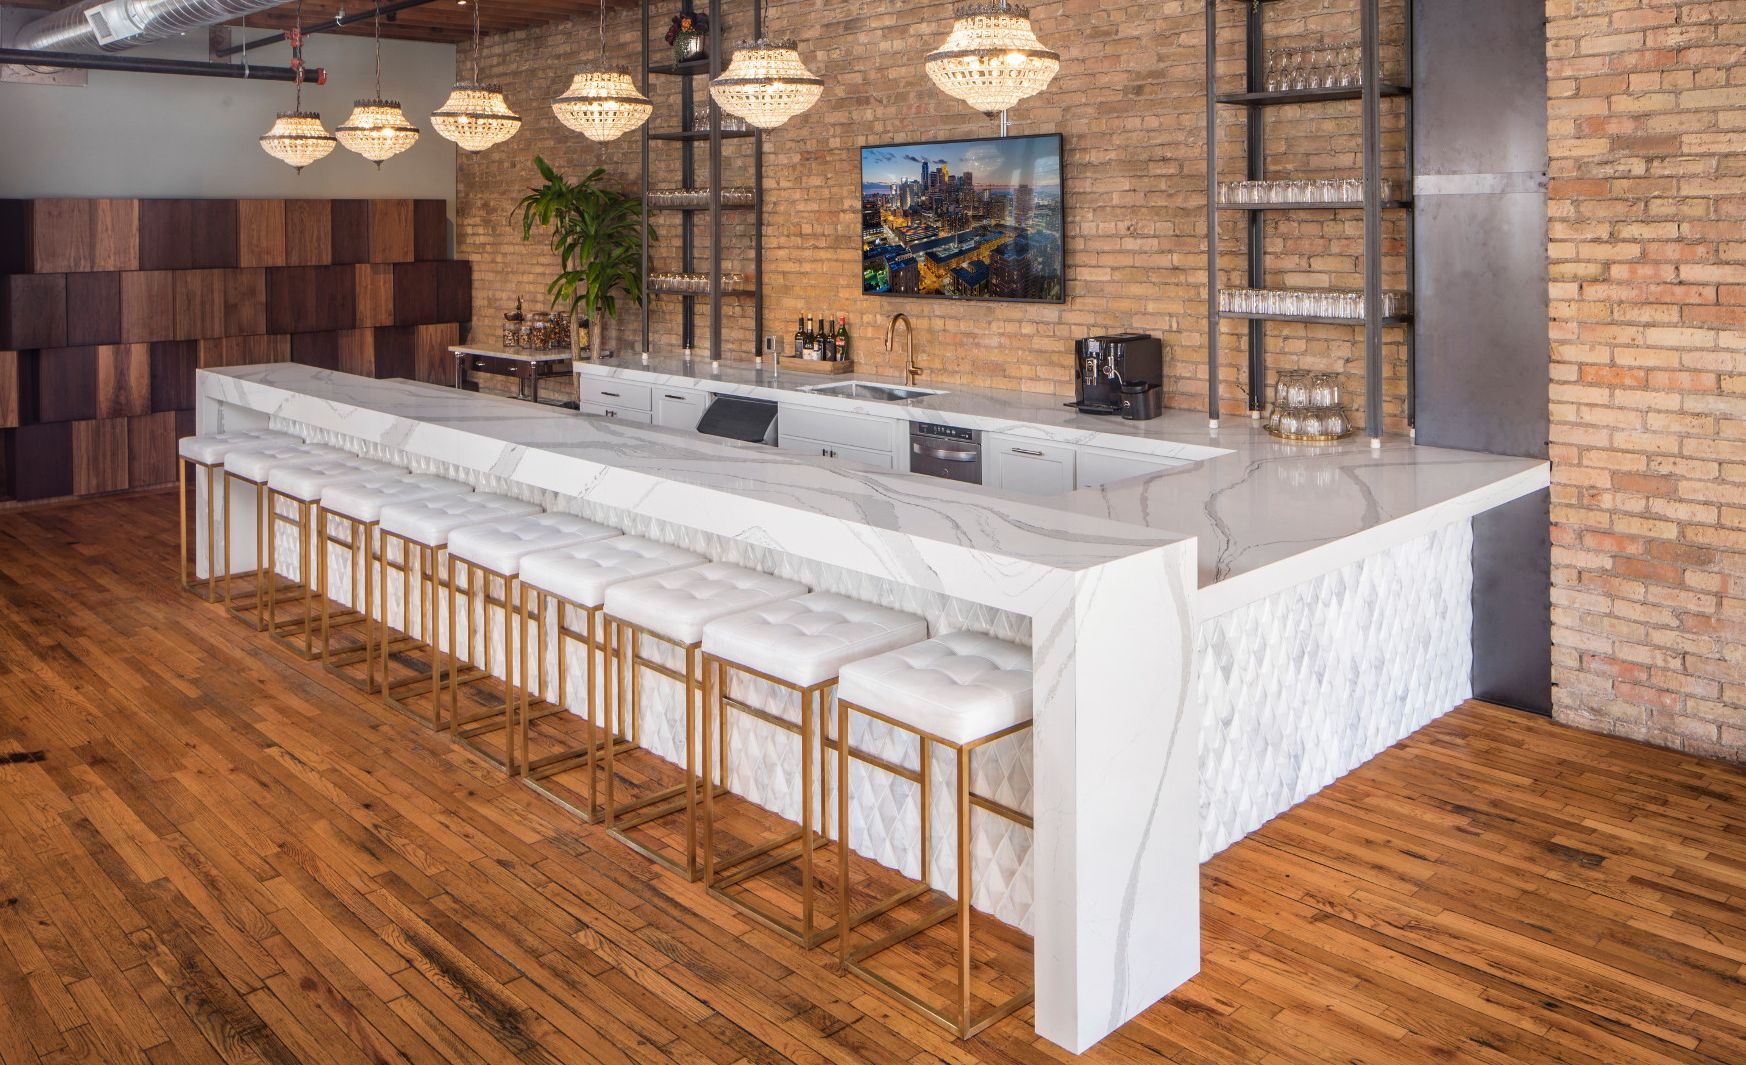 Cambria Brittanicca makes a durable waterfall-edge bar at this event center.